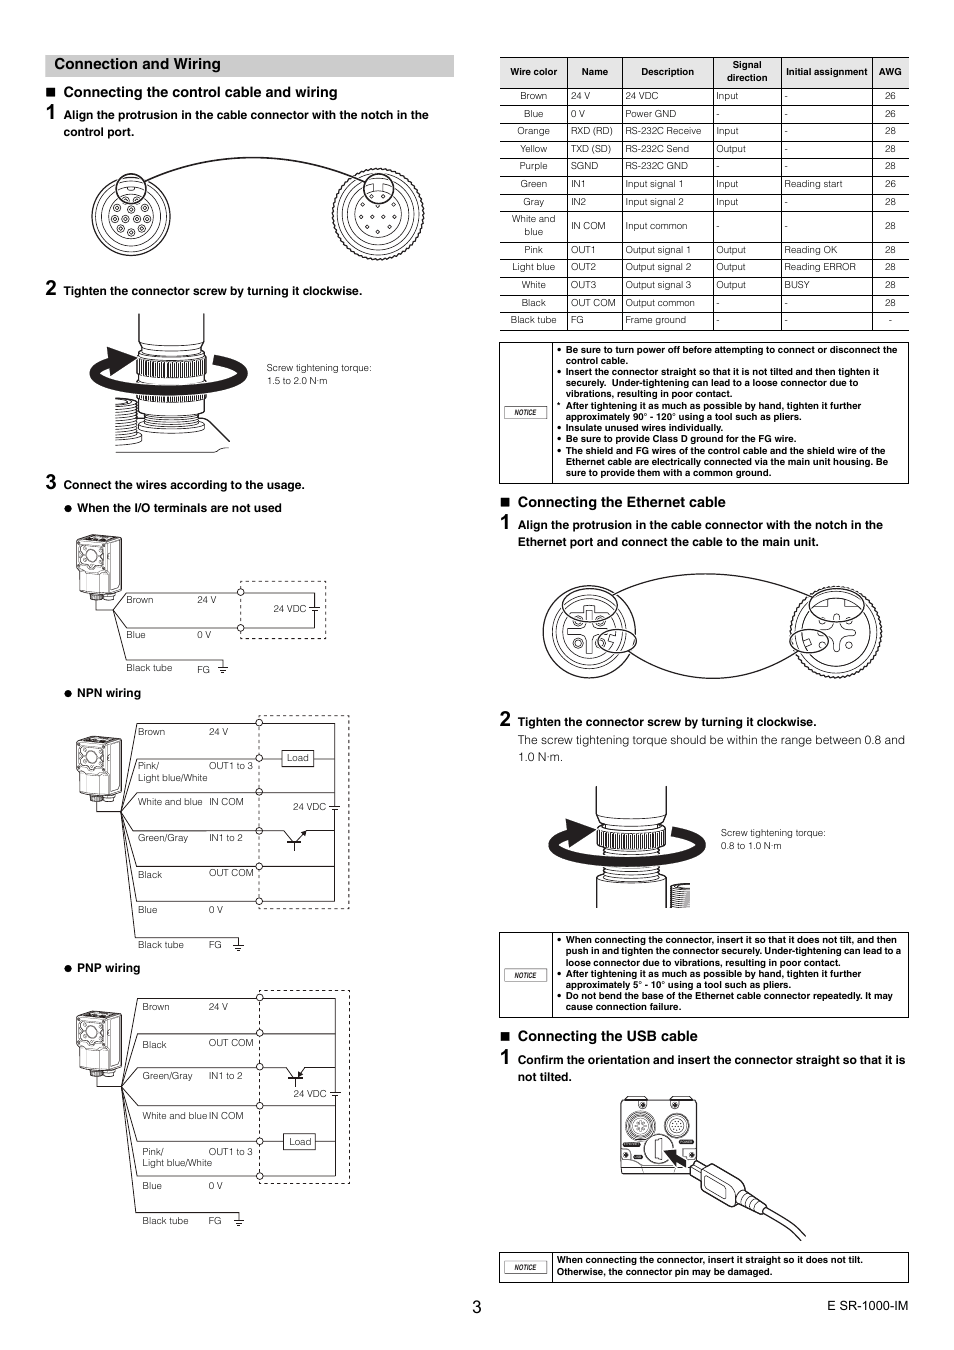 hight resolution of connection and wiring connecting the control cable and wiring connecting the ethernet cable